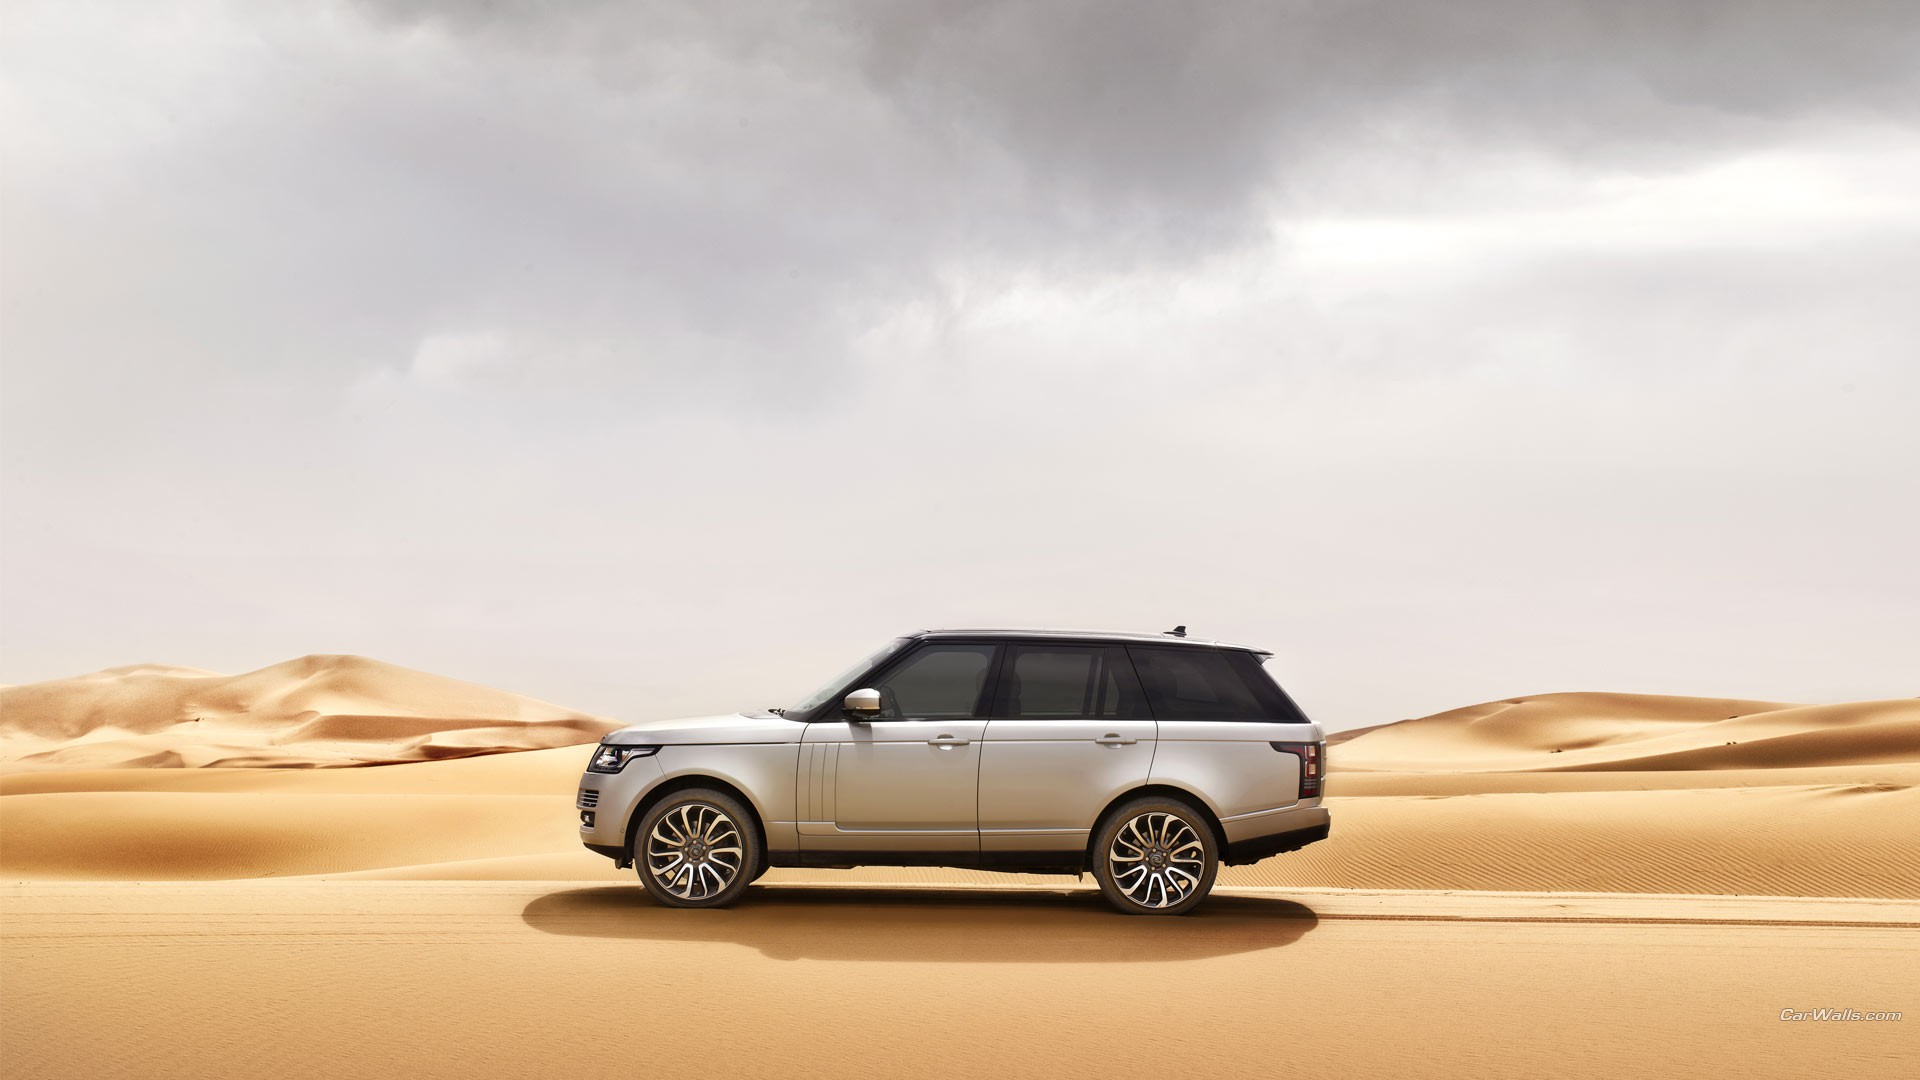 Range Rover Desert Hd Cars 4k Wallpapers Images Backgrounds Photos And Pictures